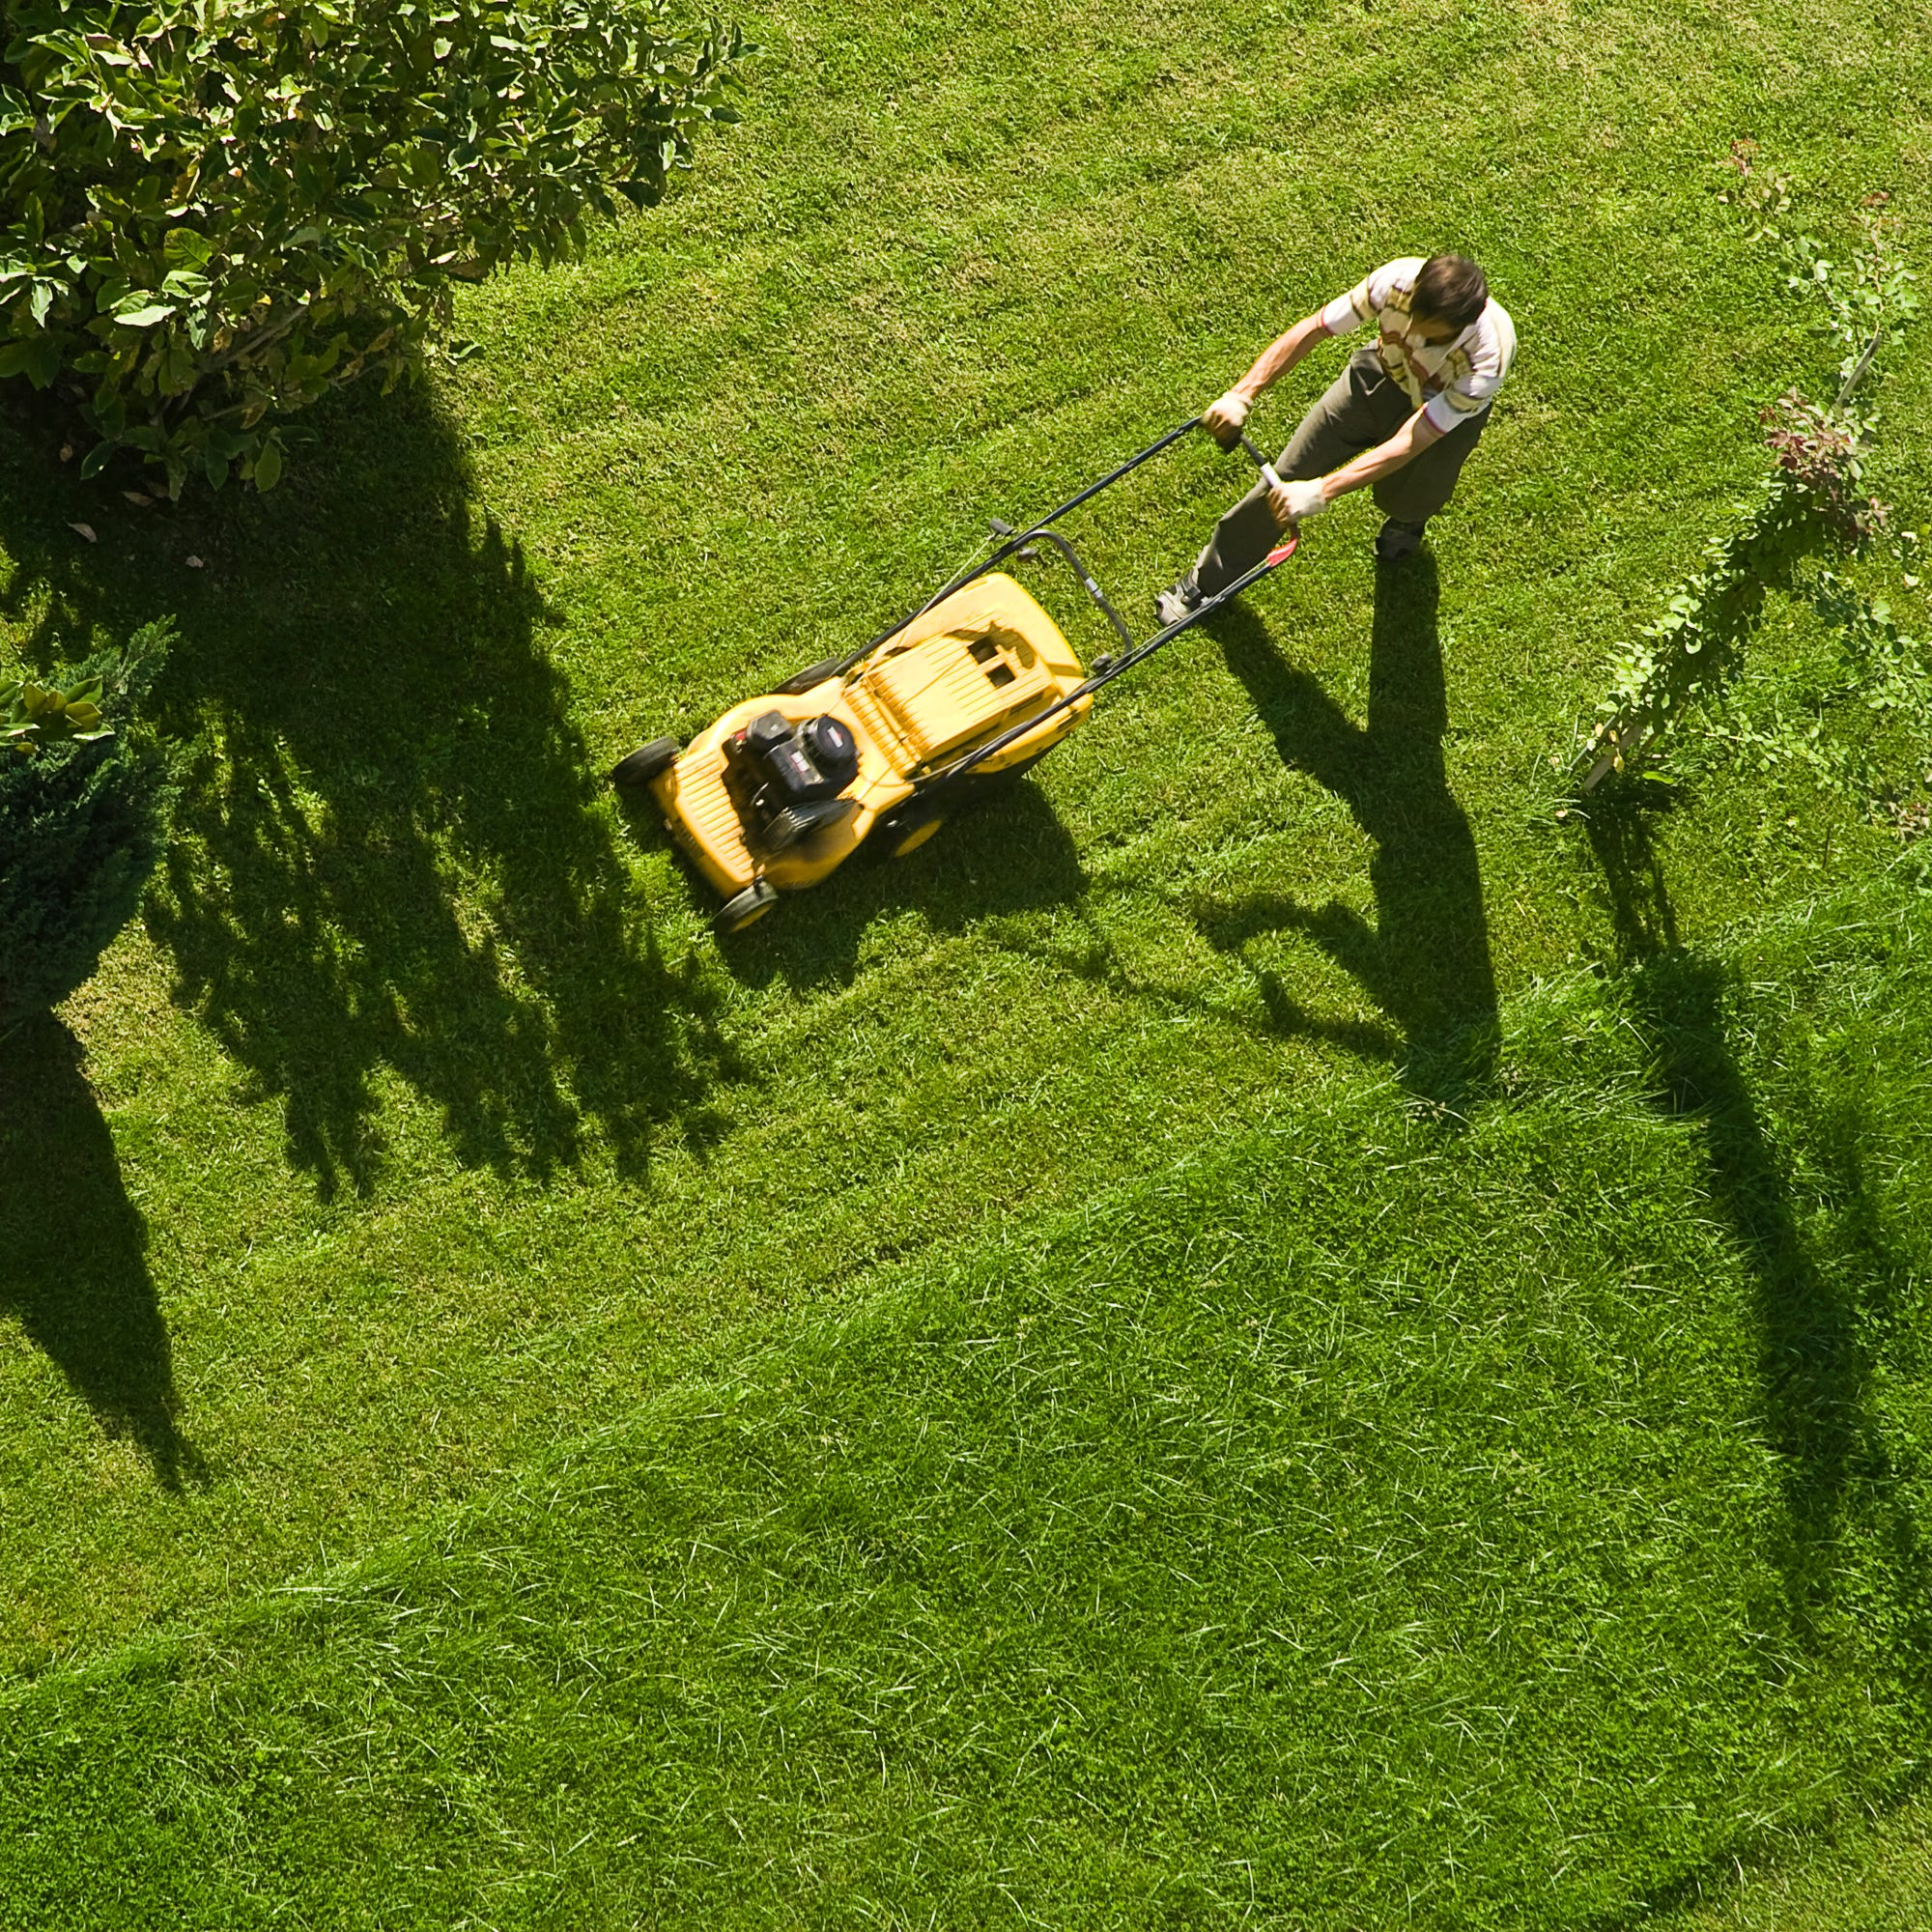 Why you should avoid raking grass clippings after mowing the lawn, and more mower taboos